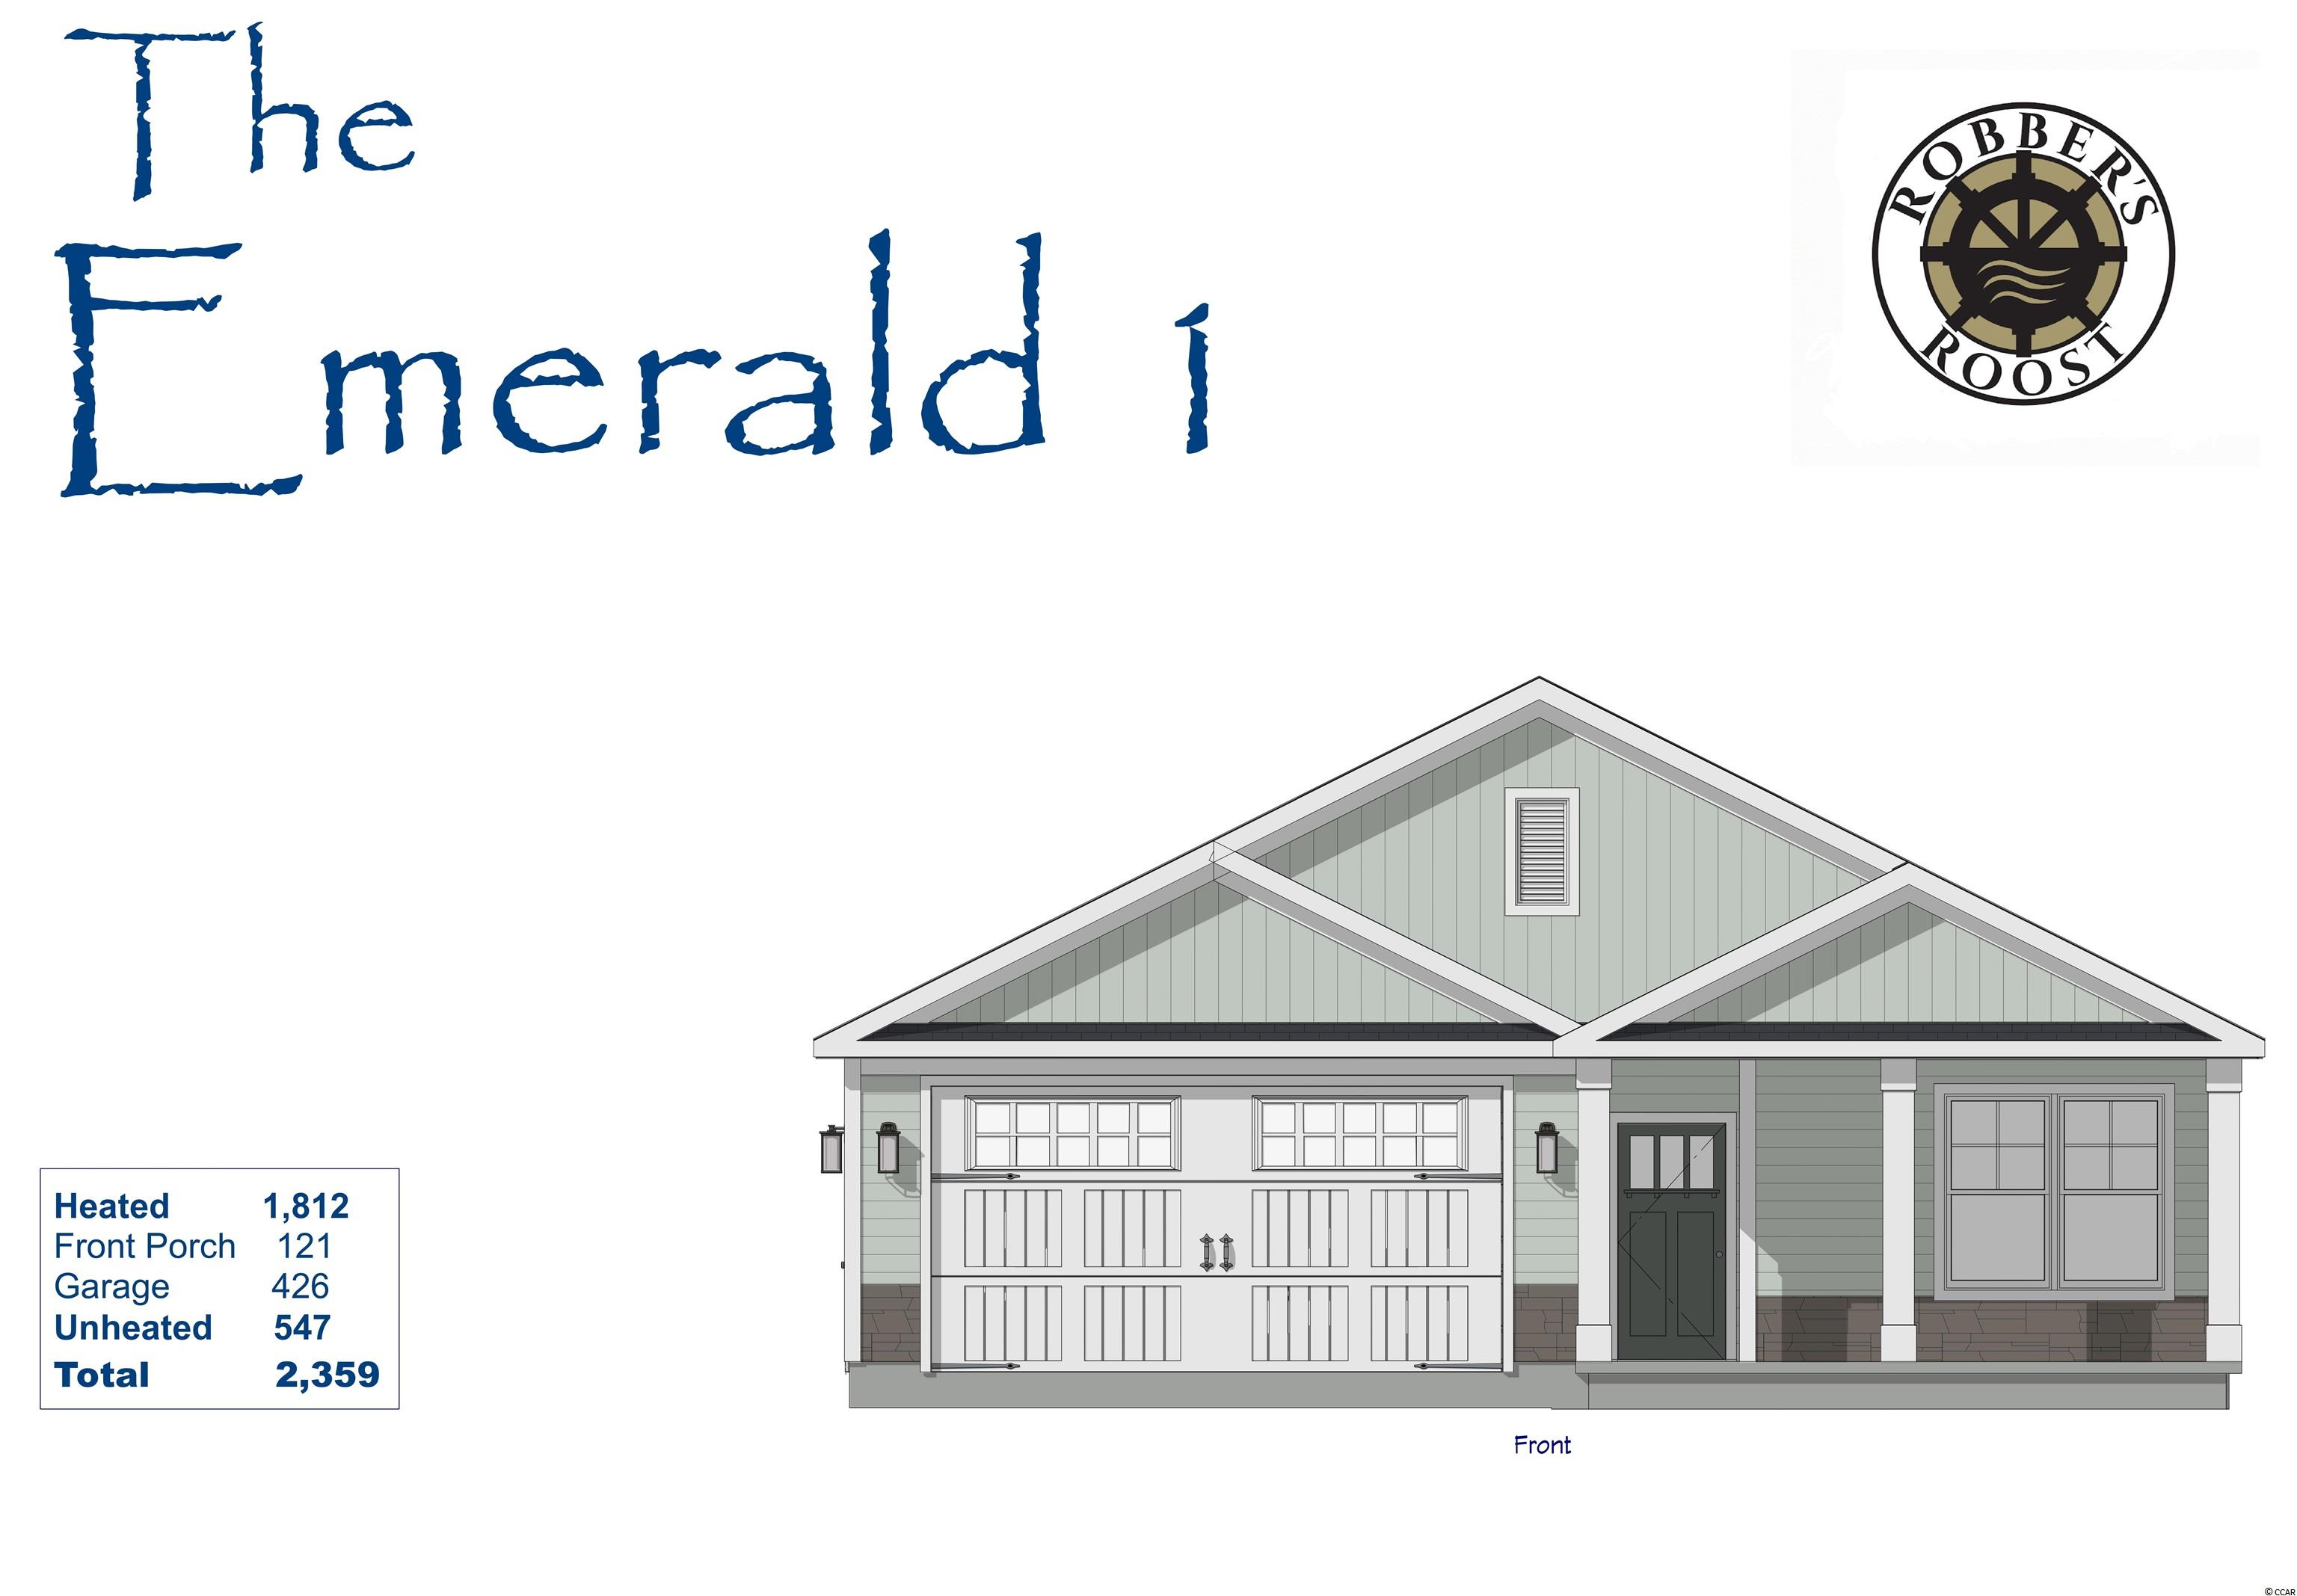 Our fantastic new Emerald 4 2G Model has so much to offer ~ This One & 1/2 story home features 3Br/2Ba and an office on first floor & 1 BR/bonus with full bath on the 2nd floor and a large 2 car + golf cart garage! This open floor plan boasts a large living room, breakfast/dining area, kitchen with free standing gas convection range, over-the-range sensor microwave, energy star dishwasher, granite countertops, garbage disposal, pantry, laundry room & rear patio. Fantastic Master Suite with tray ceiling, 2 walk in closets & bathroom with walk in shower, water closet and his & her sinks. The 2nd floor boasts a large bedroom/bonus room with full bath. Energy savings features include Low E windows, 14 Sear HVAC, Digital WiFi Programmable Thermostats, Tankless Gas Hot Water Heater & 200 Amp electrical service, security system with keyless entry.  Too much to mention so come see for yourself! From the time you step onto the quaint from porch & open the front door you'll see the quality of construction. 9' flat ceilings, wide plank restoration flooring, luxurious carpet in bedrooms.  Additionally, Robber's Roost at North Myrtle Beach is a natural gas community east of Hwy 17 with a community pool coming for the 2021 swimming season & is located within walking, bicycle or golf cart distance to Tilghman Beach, the beautiful Atlantic Ocean w/ 60 miles of white sandy beaches and is close to Coastal North Town Center (shopping, dining, beauty, pets), Shag dance capital Main St., golf, boating/fishing in the ICW, entertainment and all the amenities of living in Coastal South Carolina. Whether a primary residence or your vacation get-a-way, Don't Miss ~ come live the dream!  (*Many new plans to choose from!)